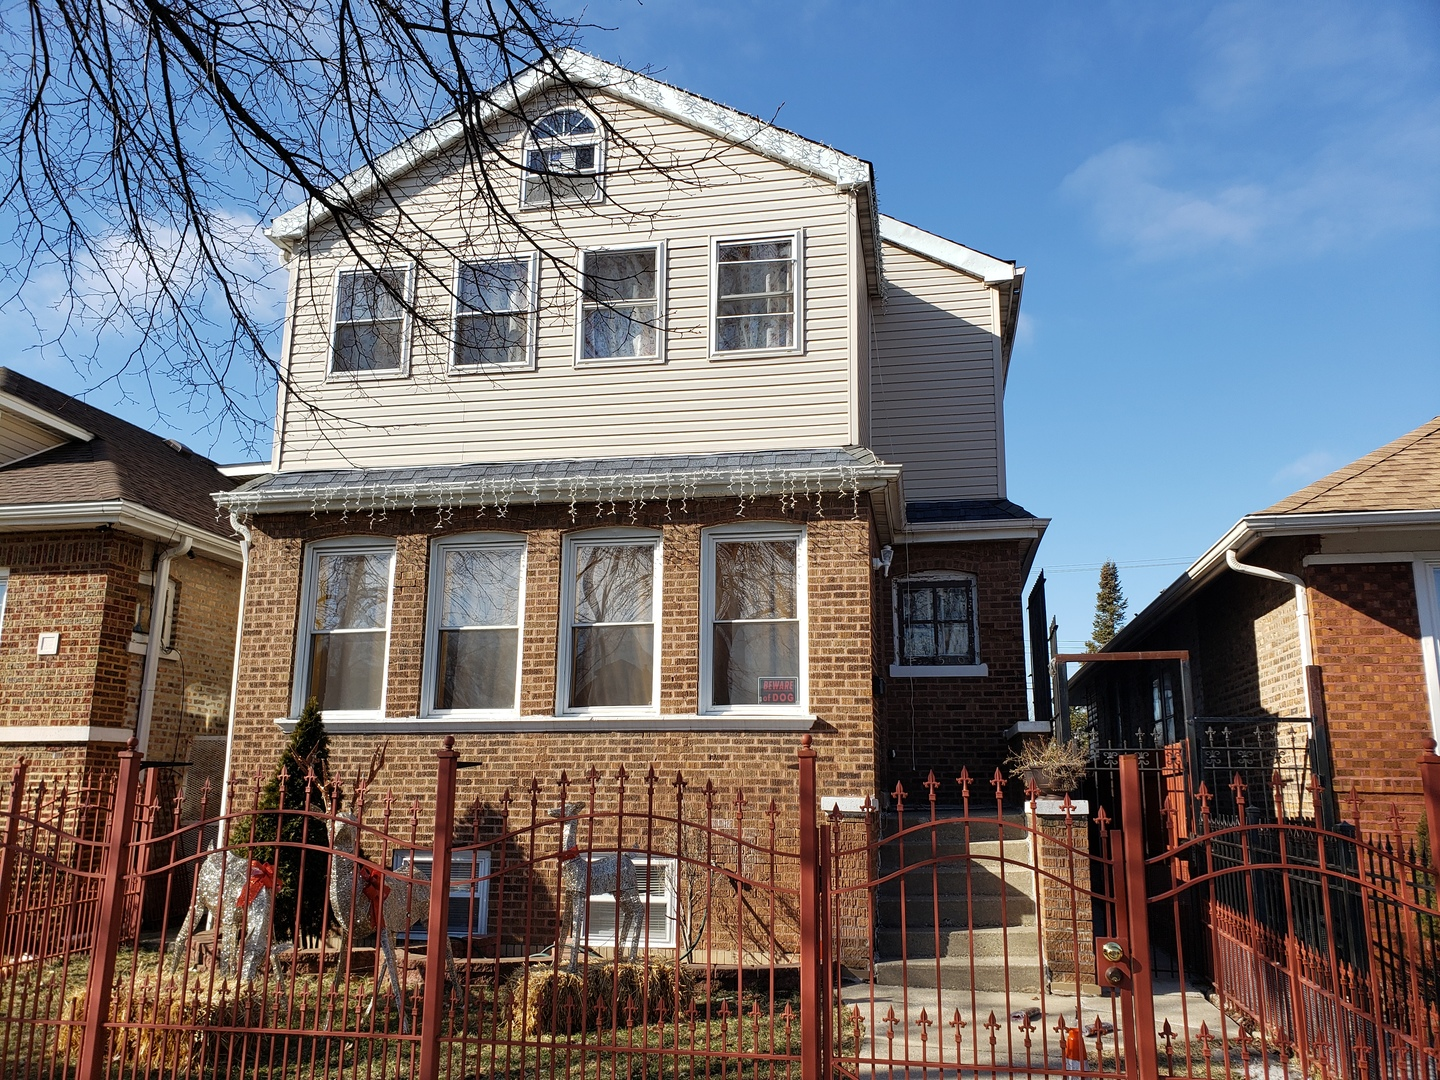 5710 SOUTH TROY STREET, CHICAGO, IL 60629